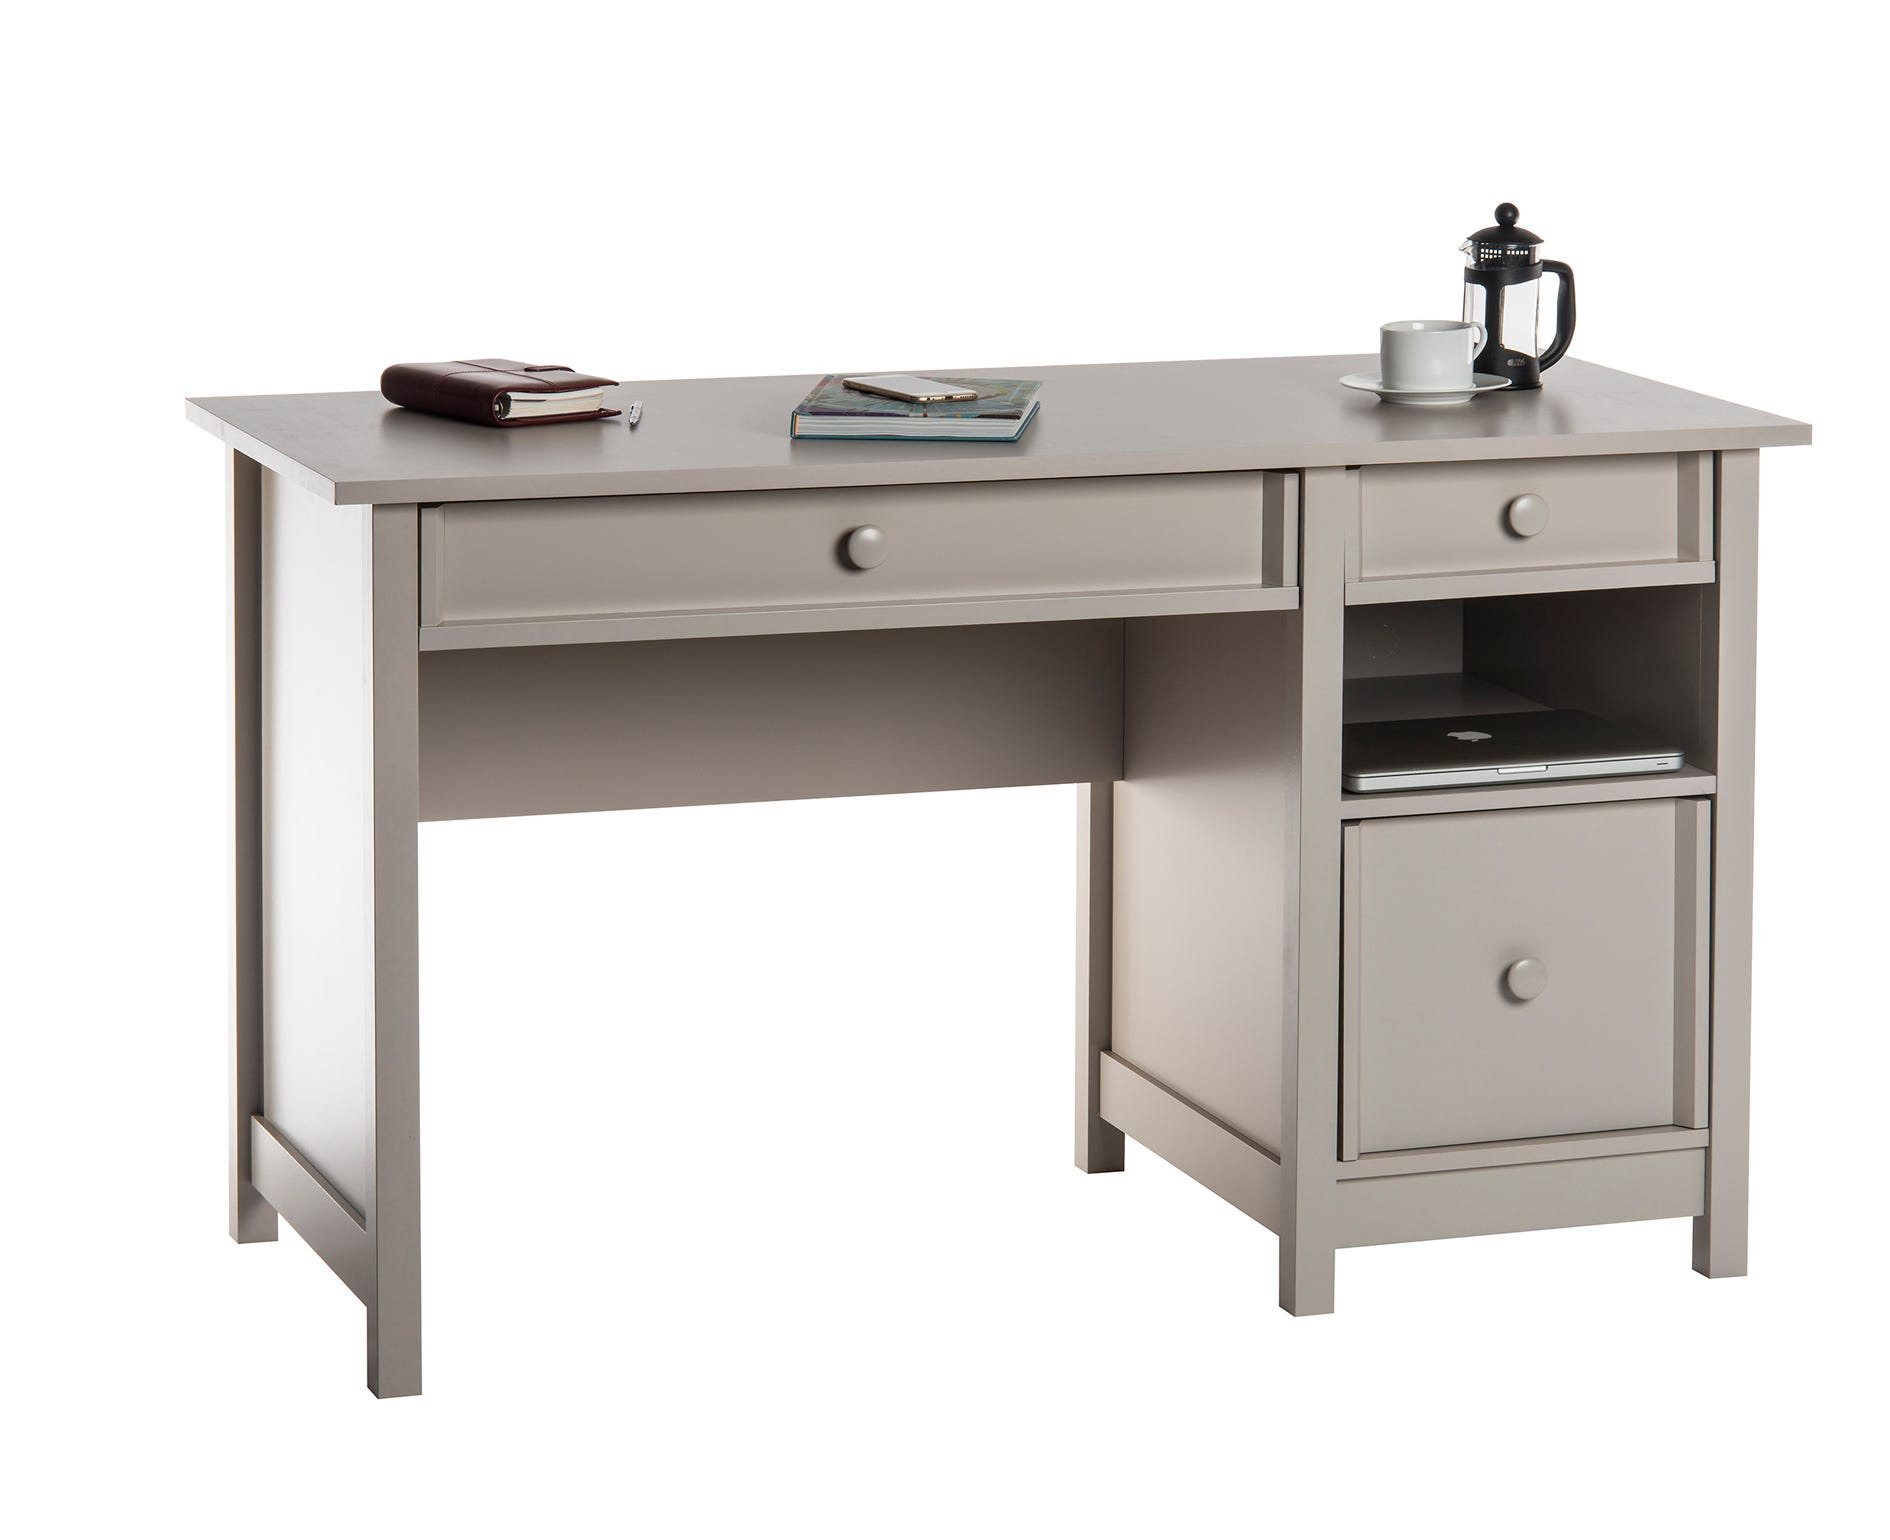 Teknik Office Cotswold Home Office Desk, Grey